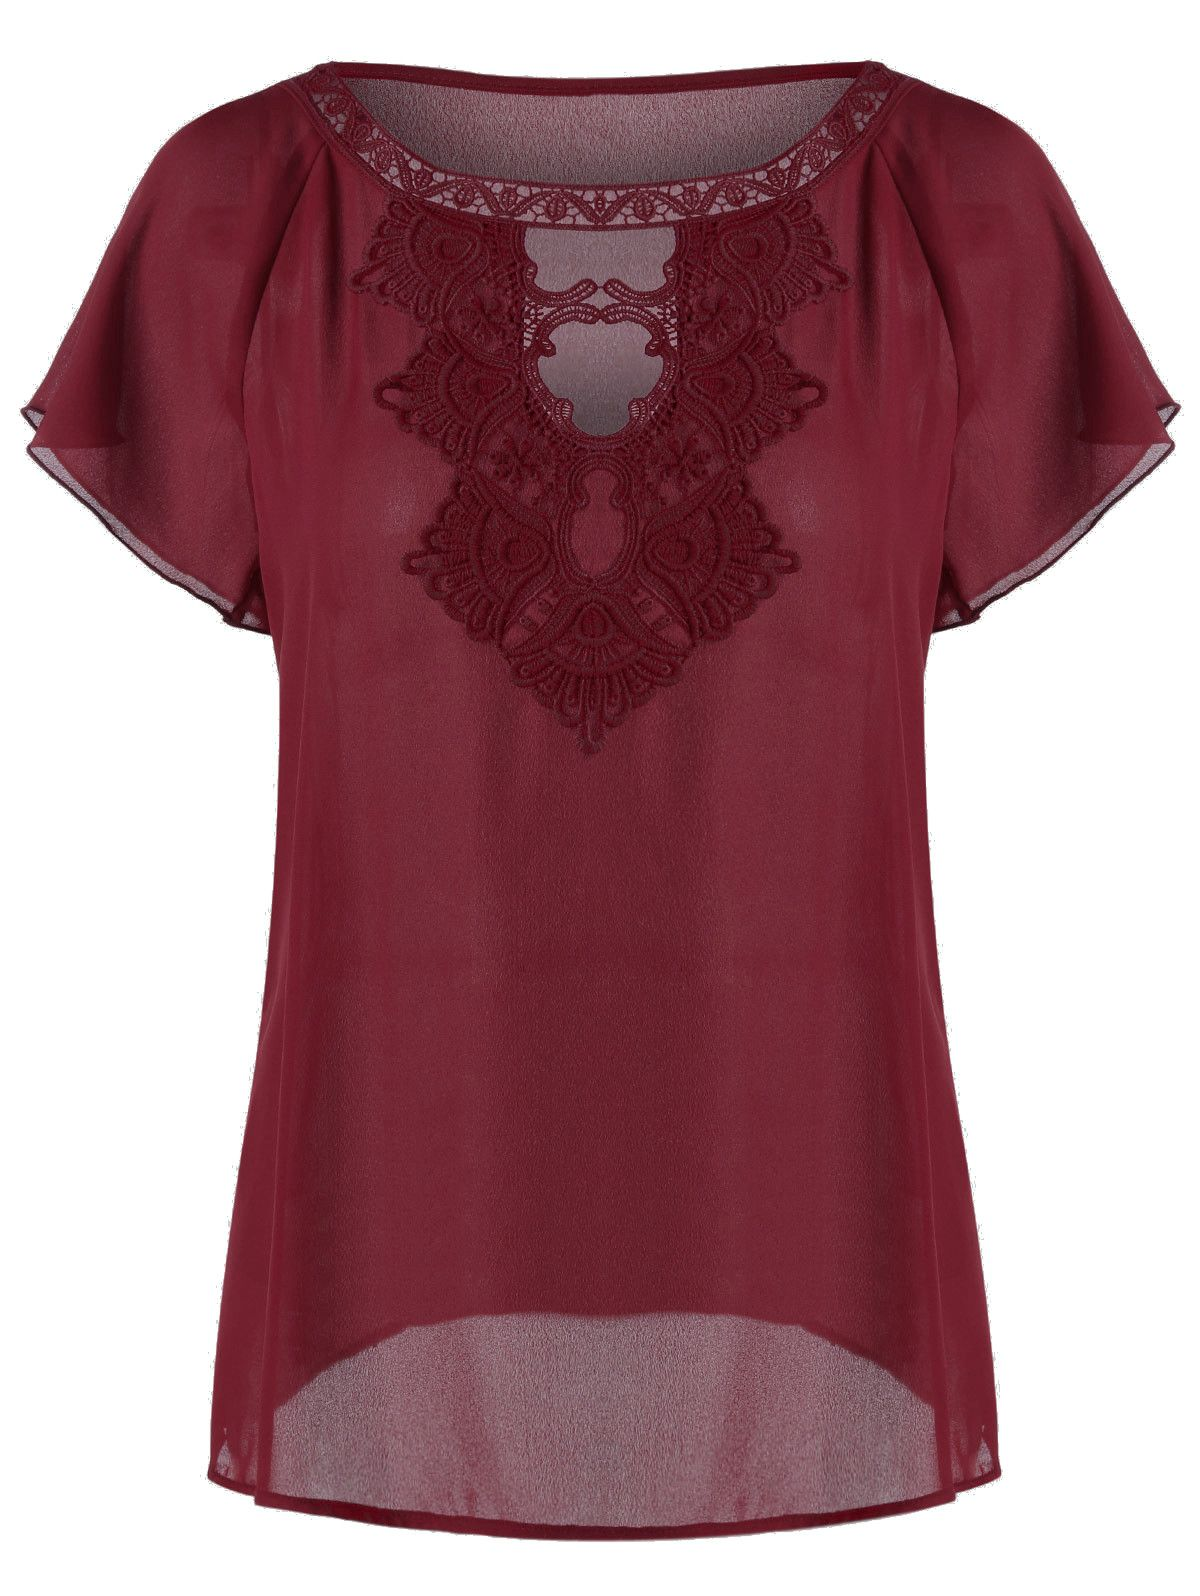 Raglan Sleeve Embroidery Cut Out Blouse - Wine Red - M | Strapless ...